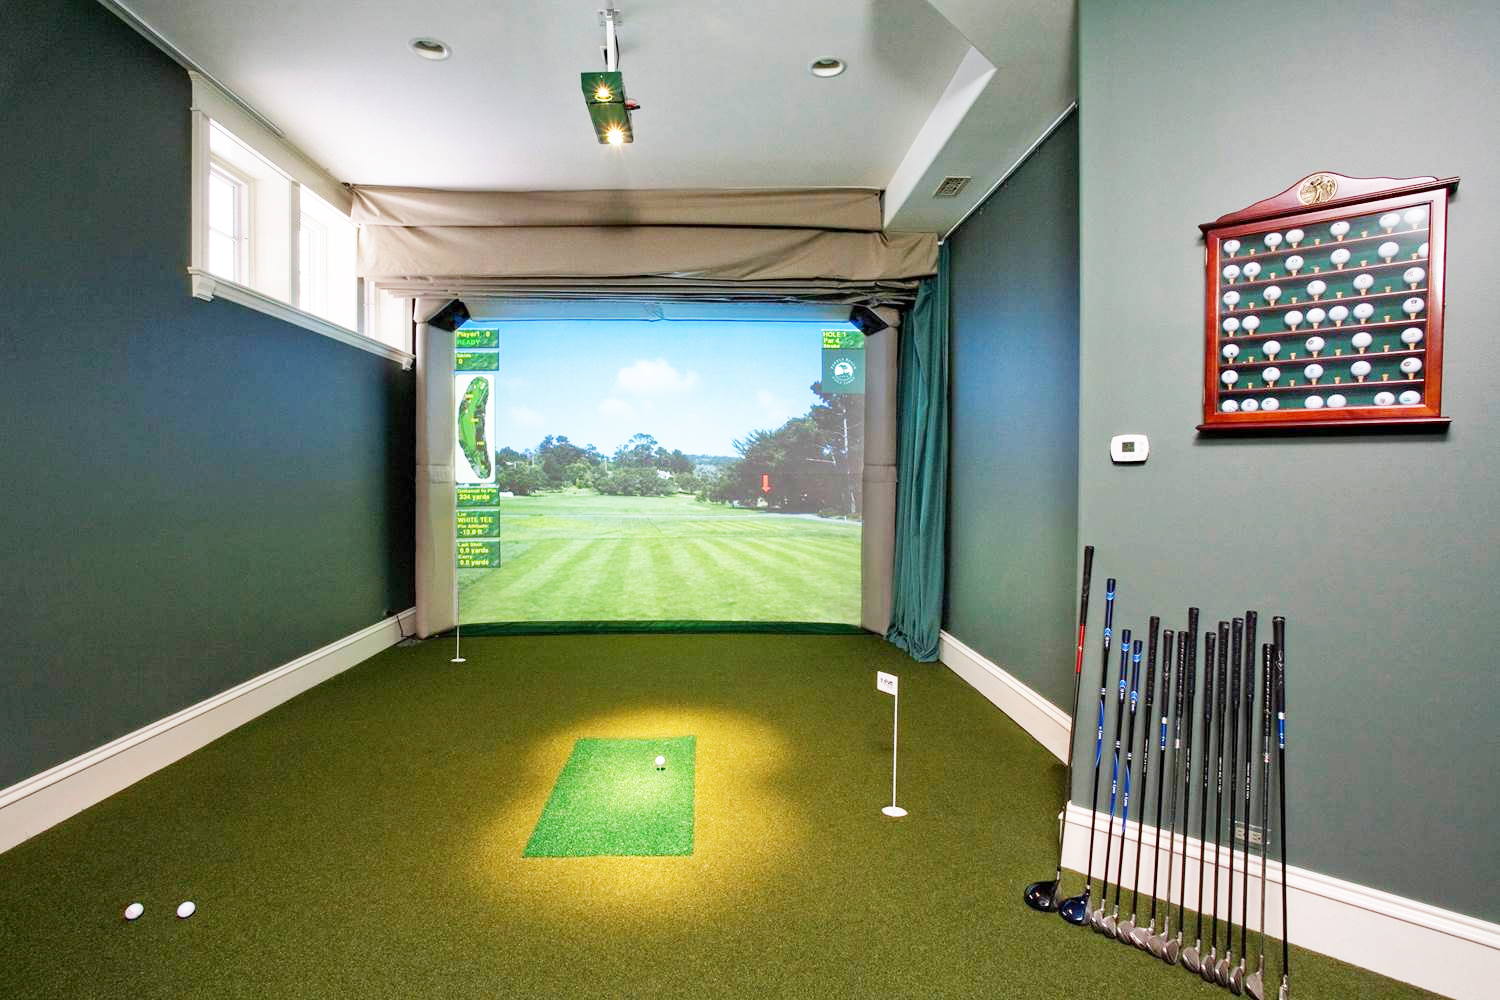 Top Reasons Why You Should Play Indoor Simulated Golf